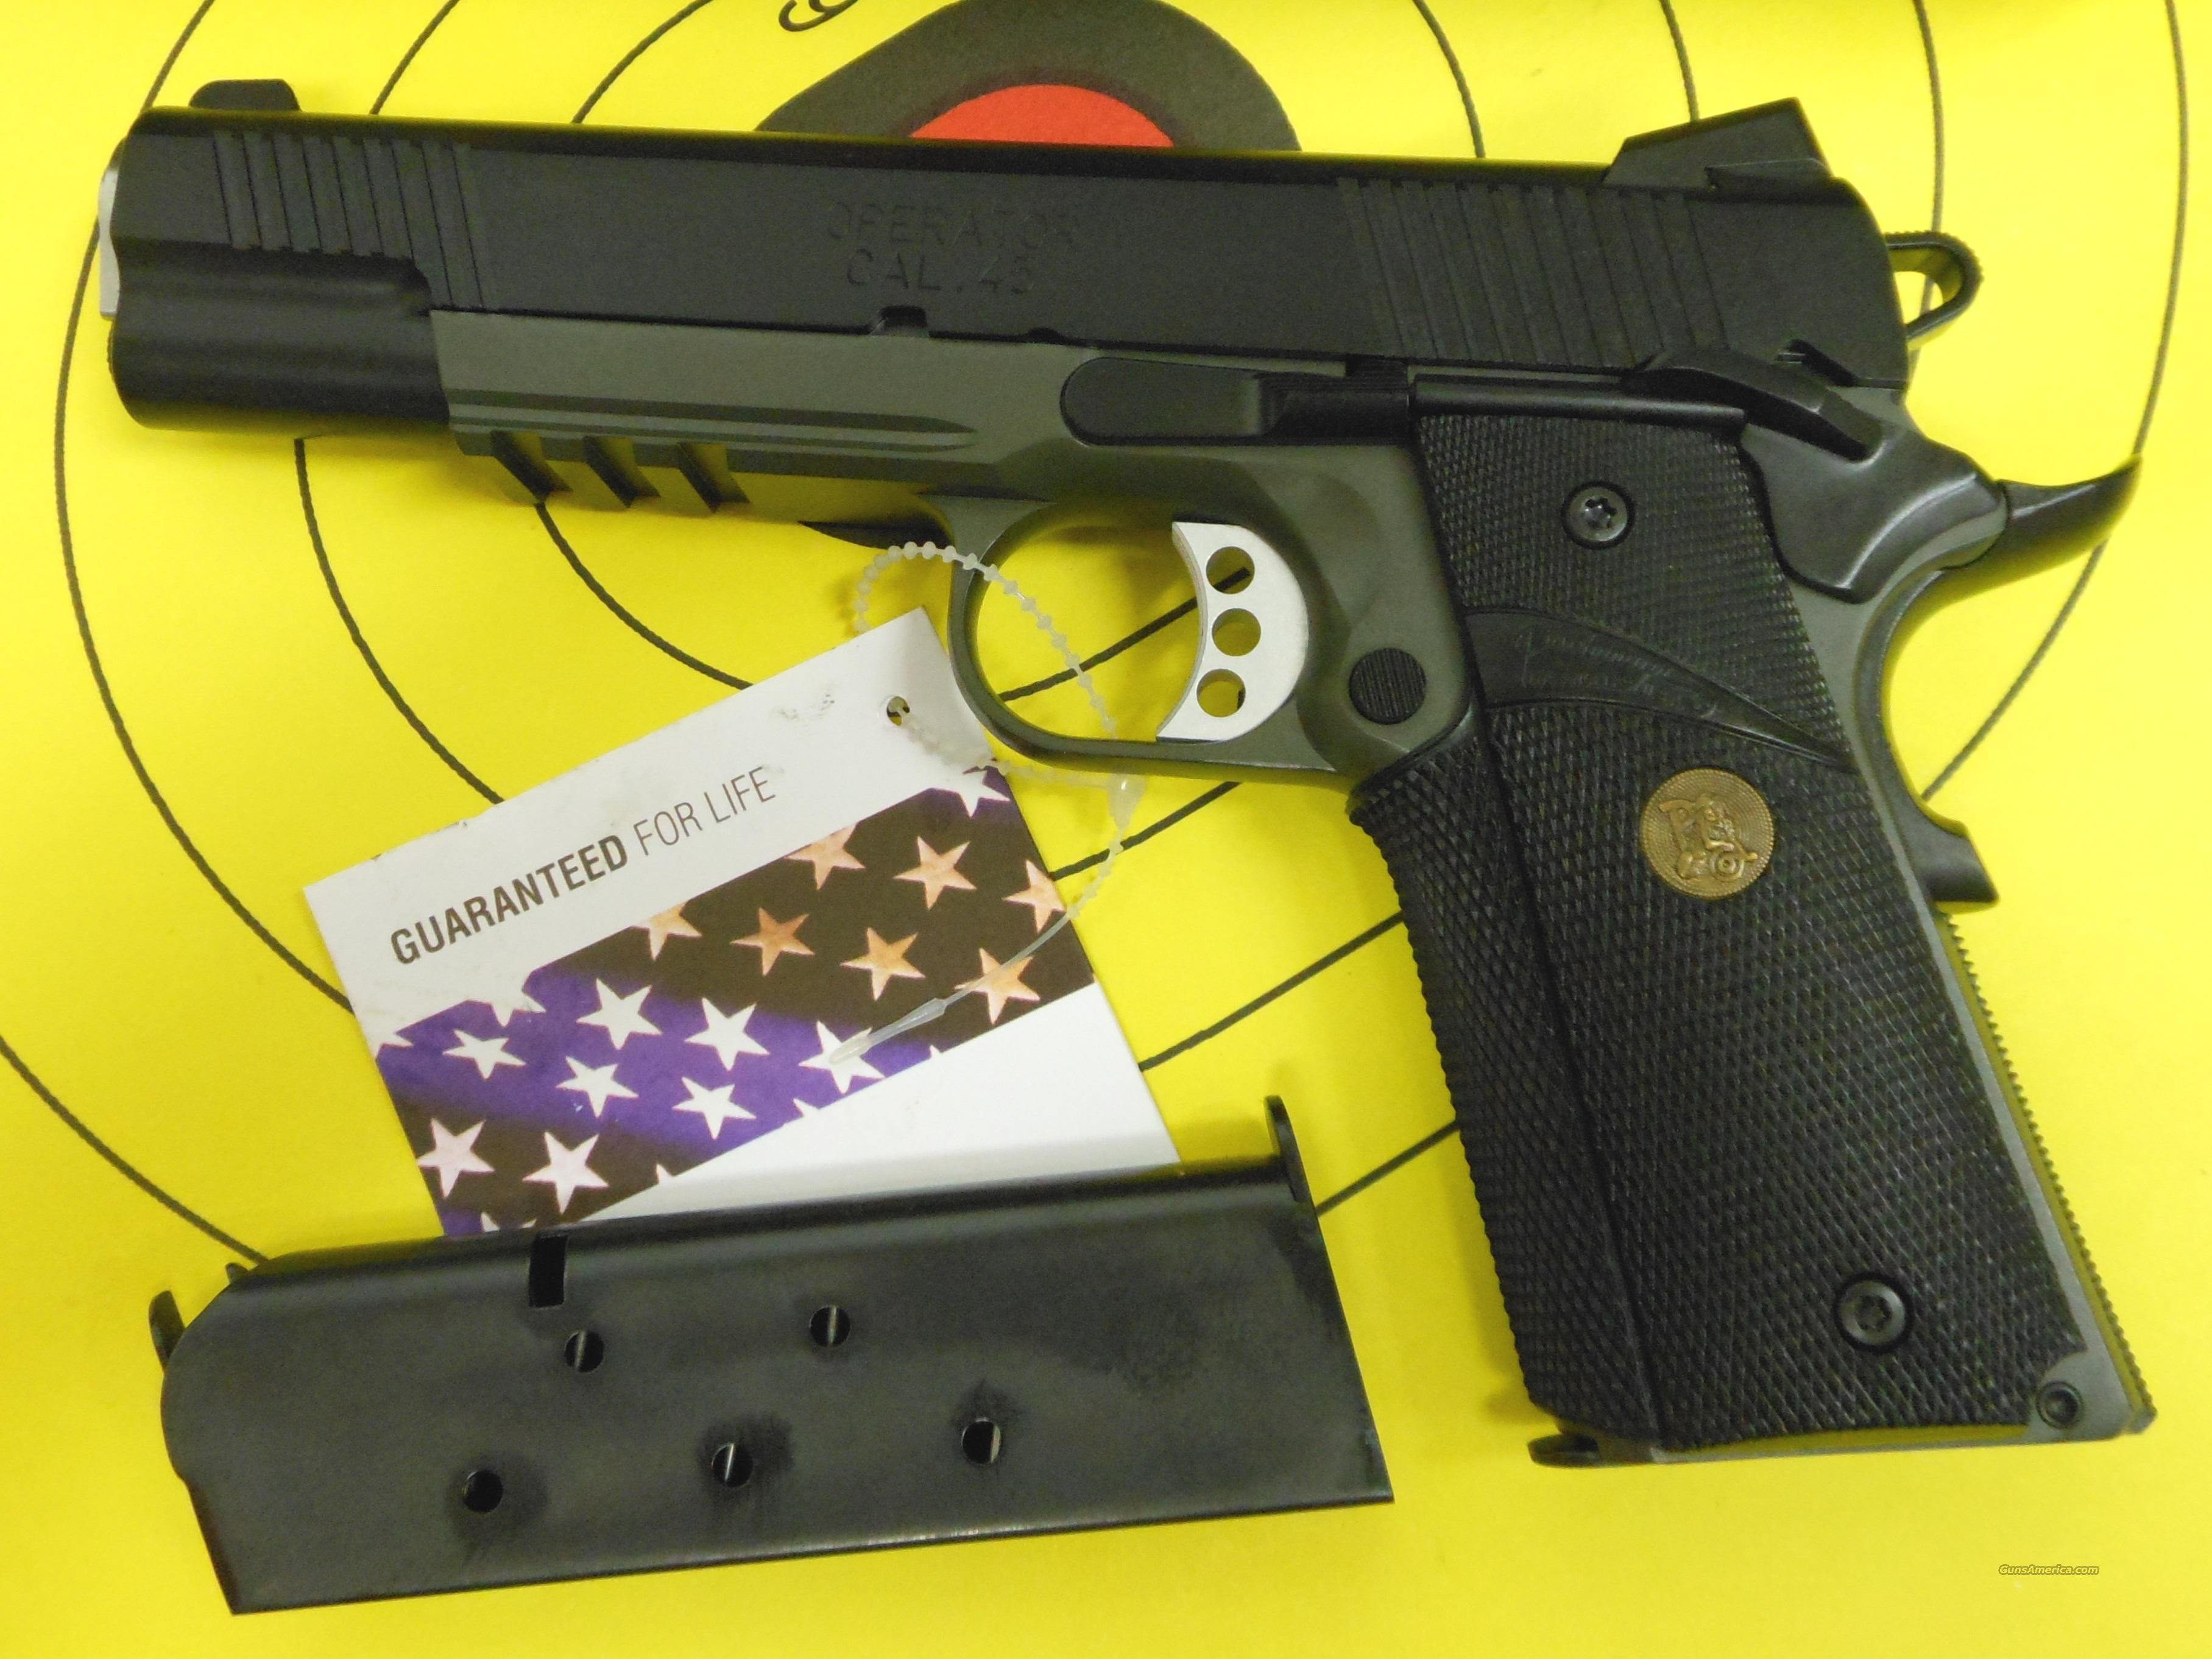 SPRINGFIELD ARMORY OPERATOR PX9105MLP RAILED 45 ACP 1911 *OD GREEN, PACHMAYR GRIPS*  Guns > Pistols > Springfield Armory Pistols > 1911 Type